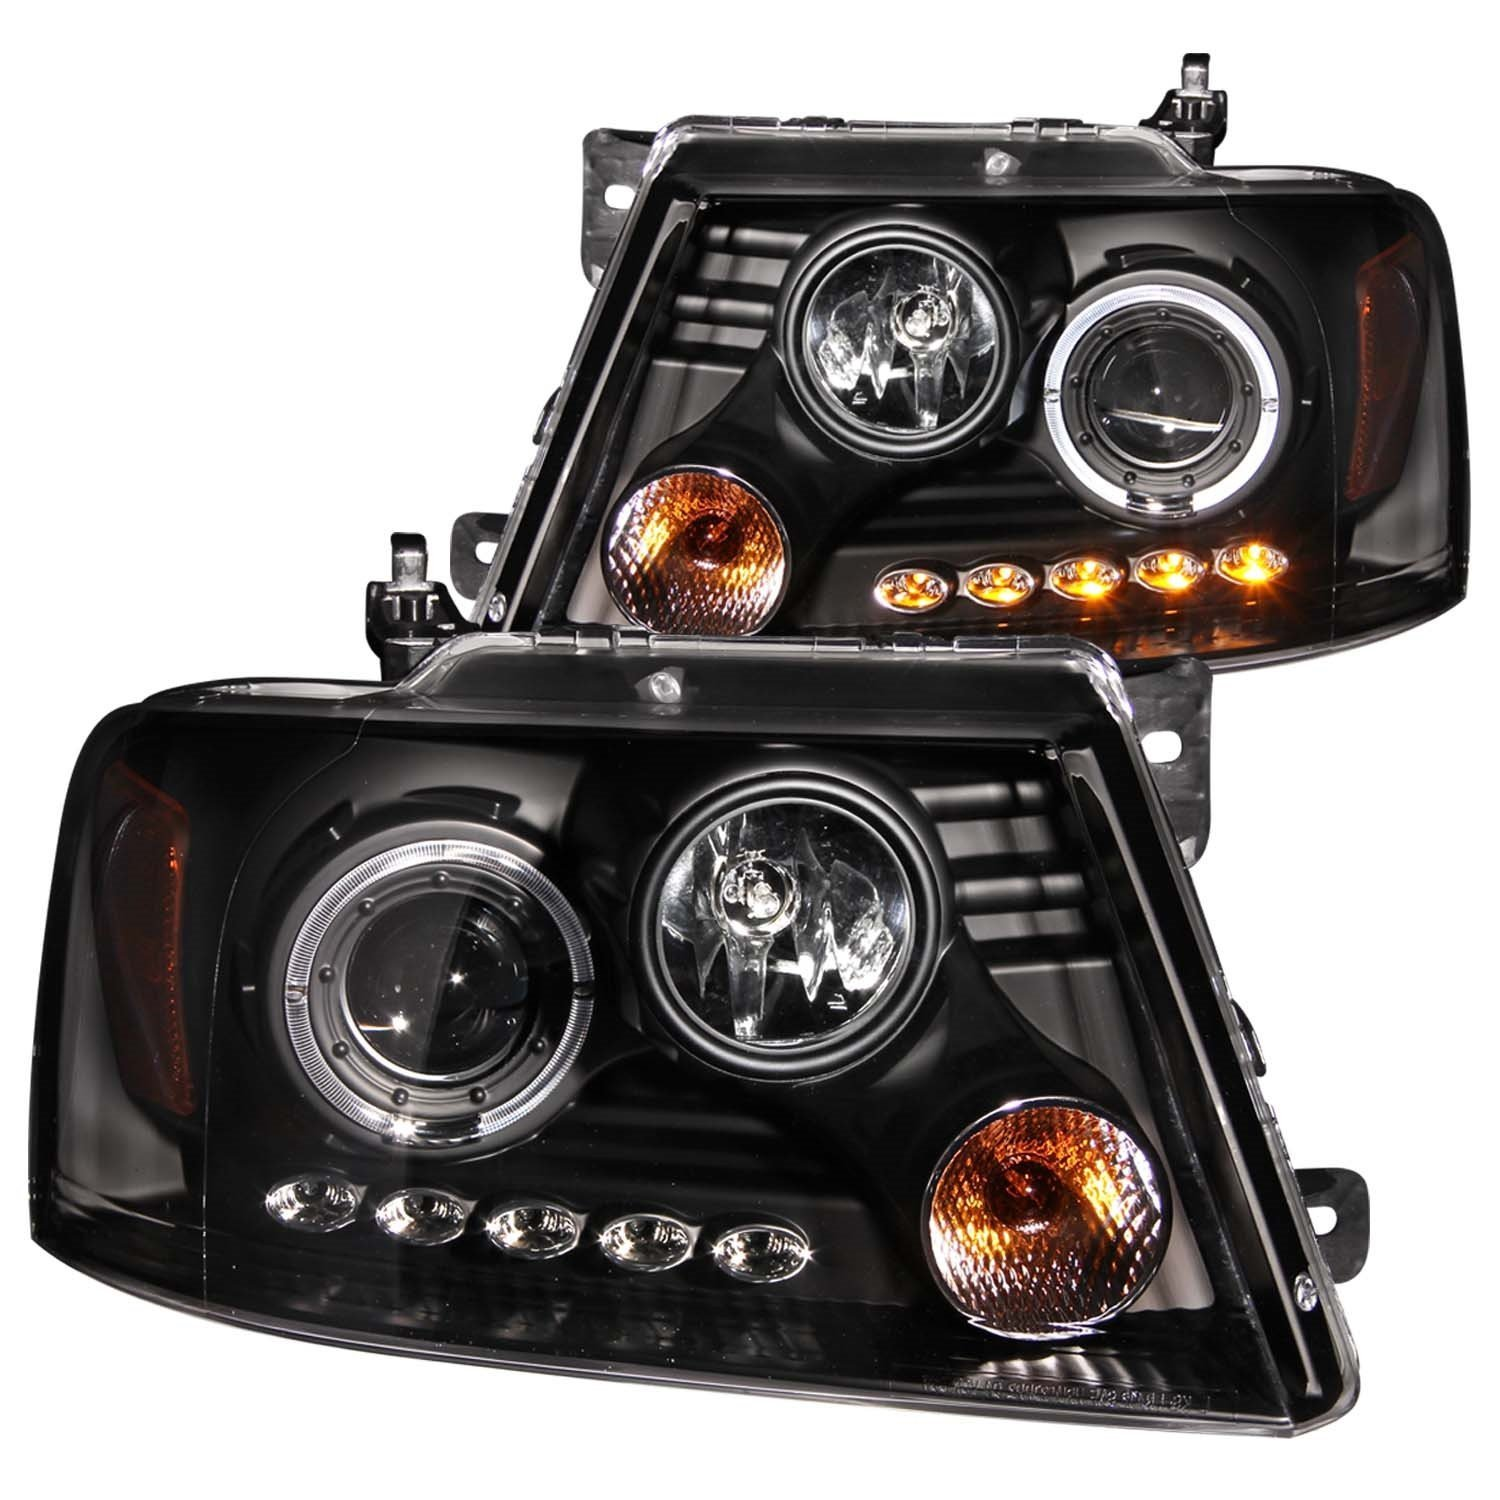 5 most attractive custom f150 led projector headlights for. Black Bedroom Furniture Sets. Home Design Ideas